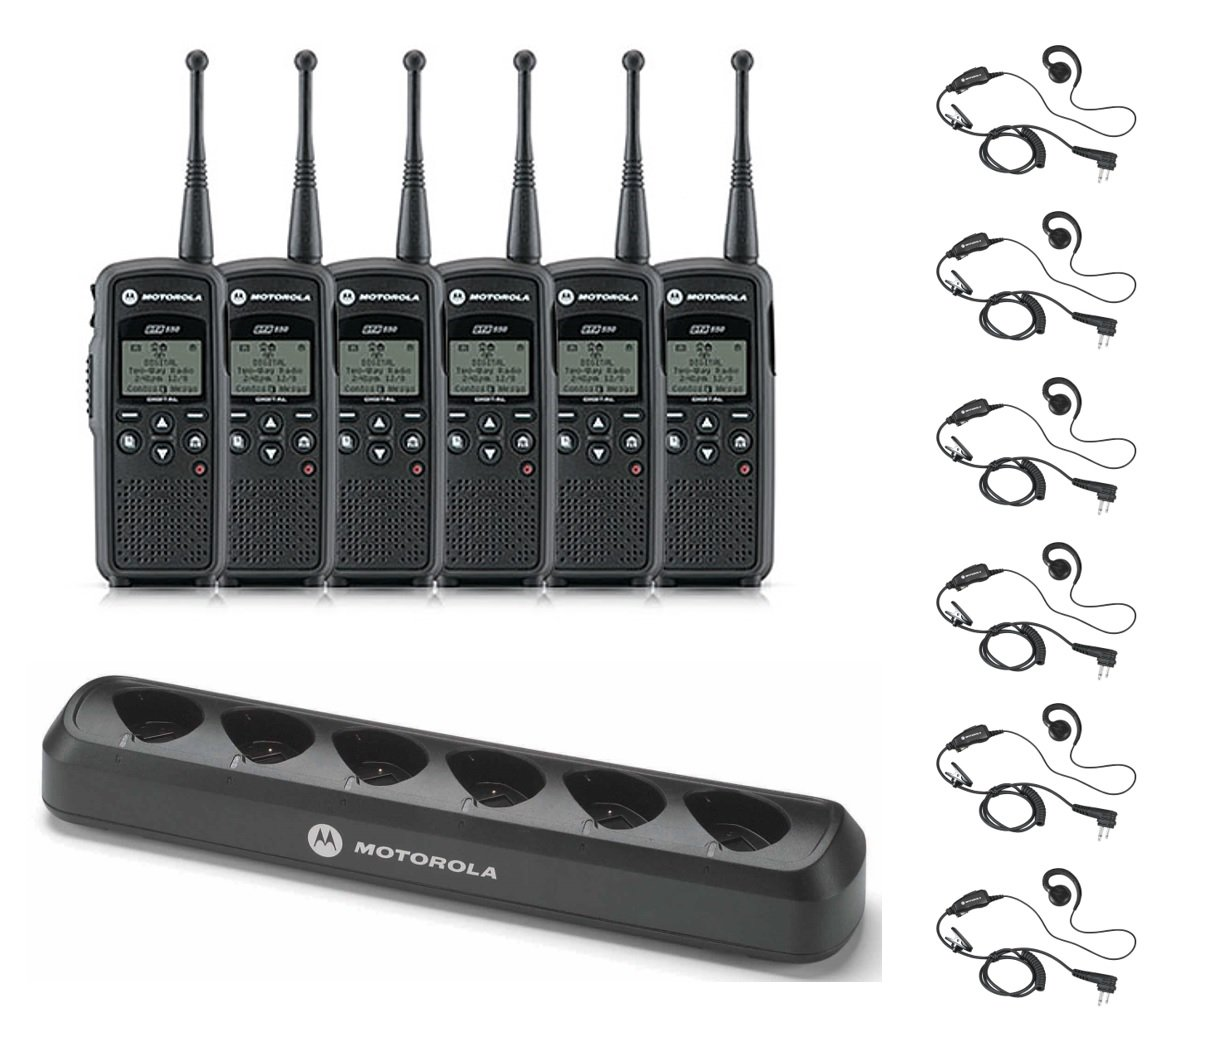 6 Pack of Motorola DTR550 Radios with 6 Push To Talk (PTT) earpieces and a 6-Bank Radio Charger